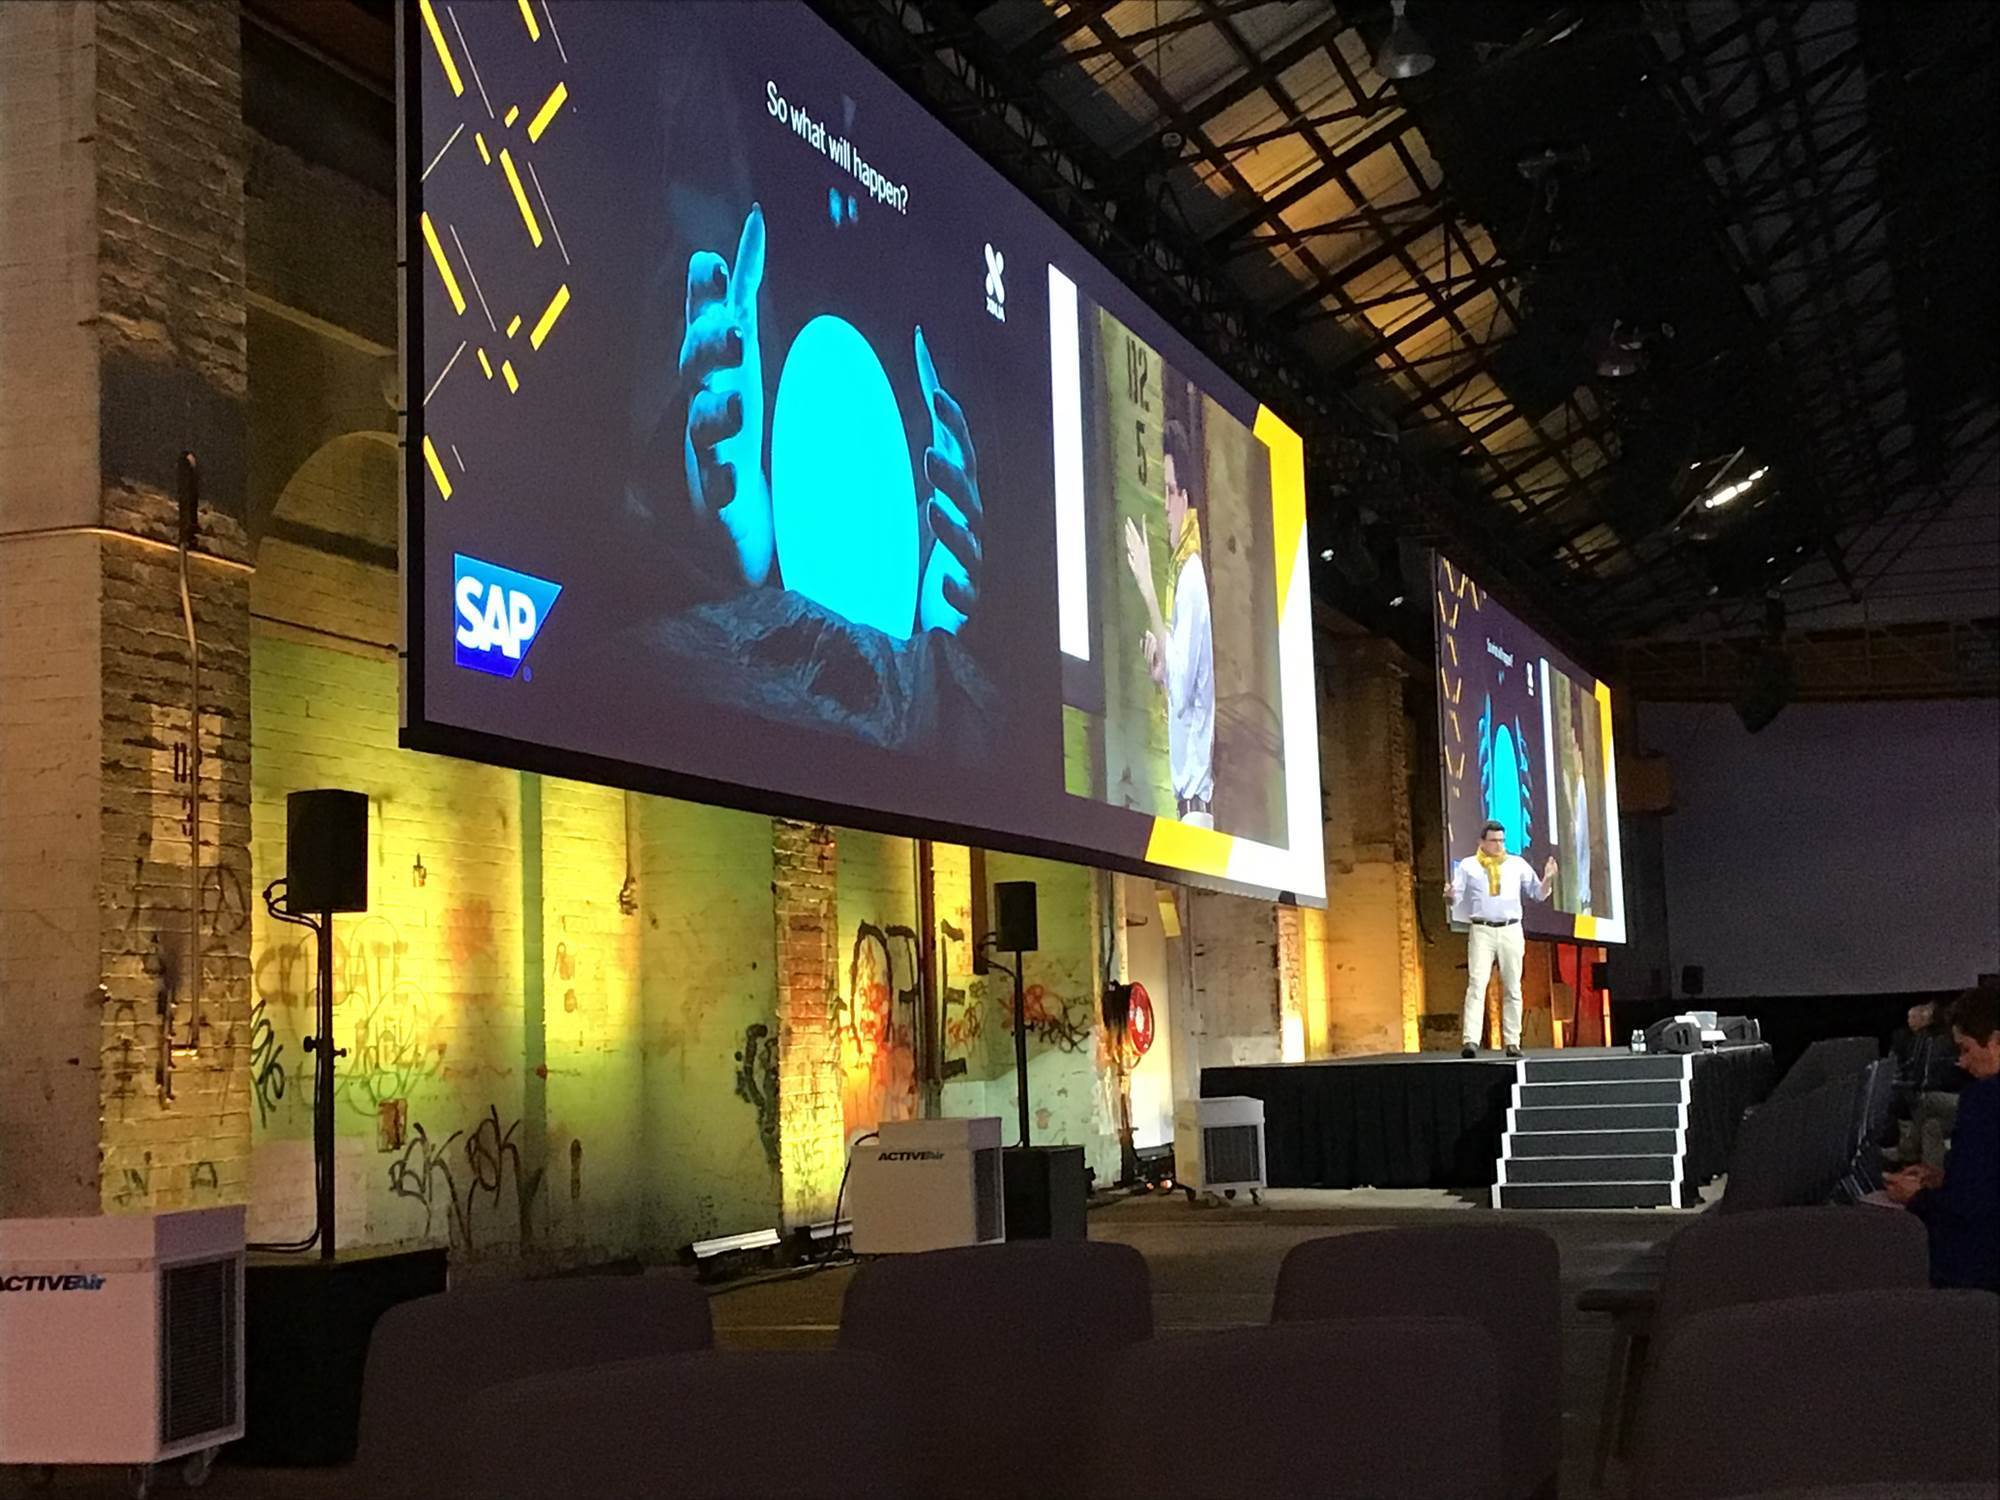 Xinja reveals SAP core cost 'about $1.8 million'